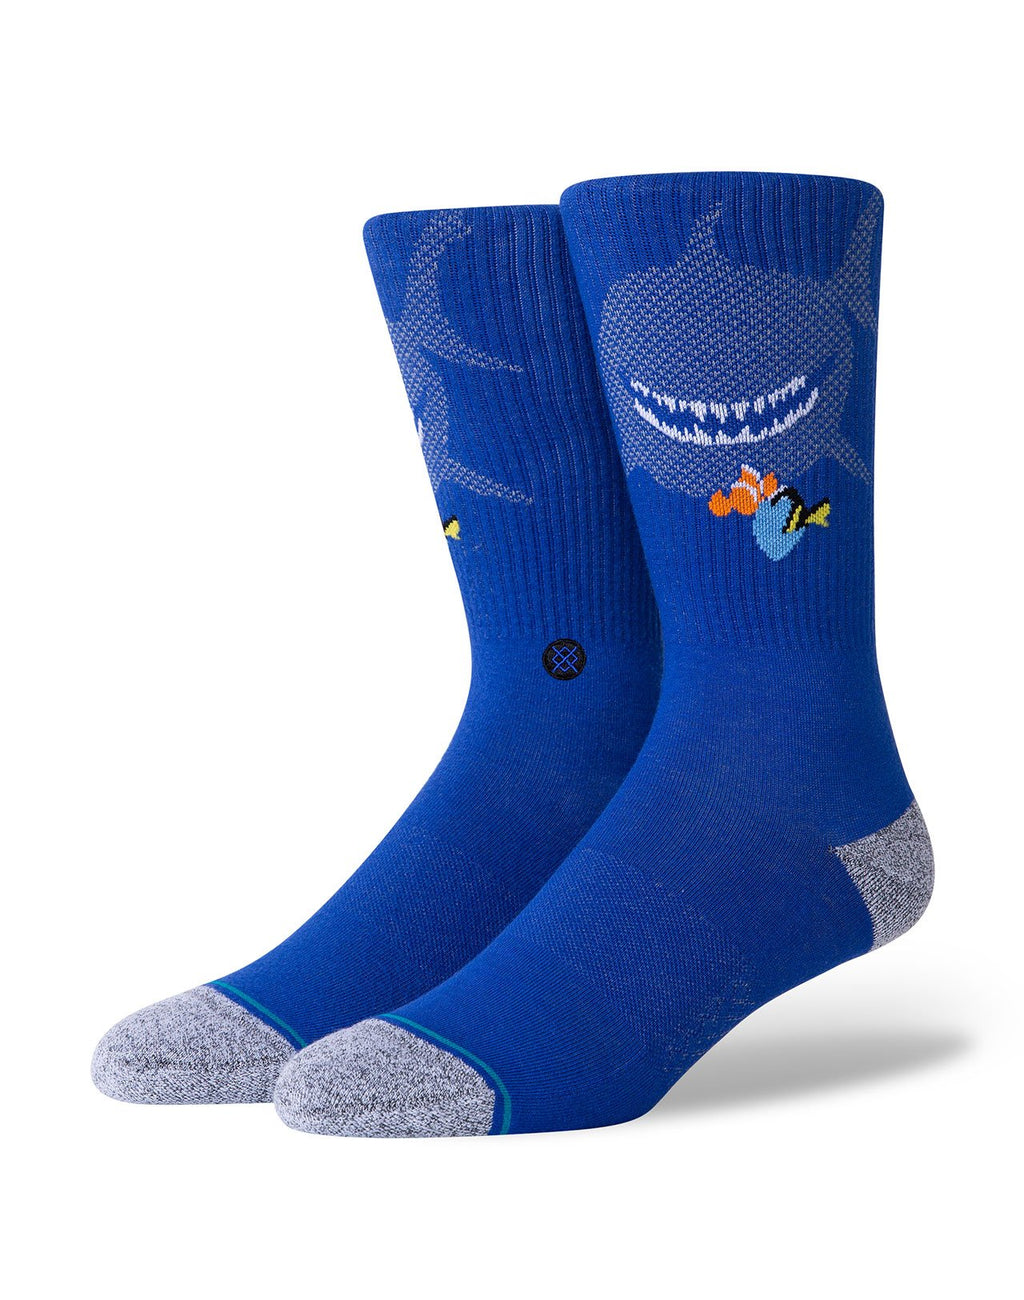 Chaussettes Pixar finding Nemo Stance